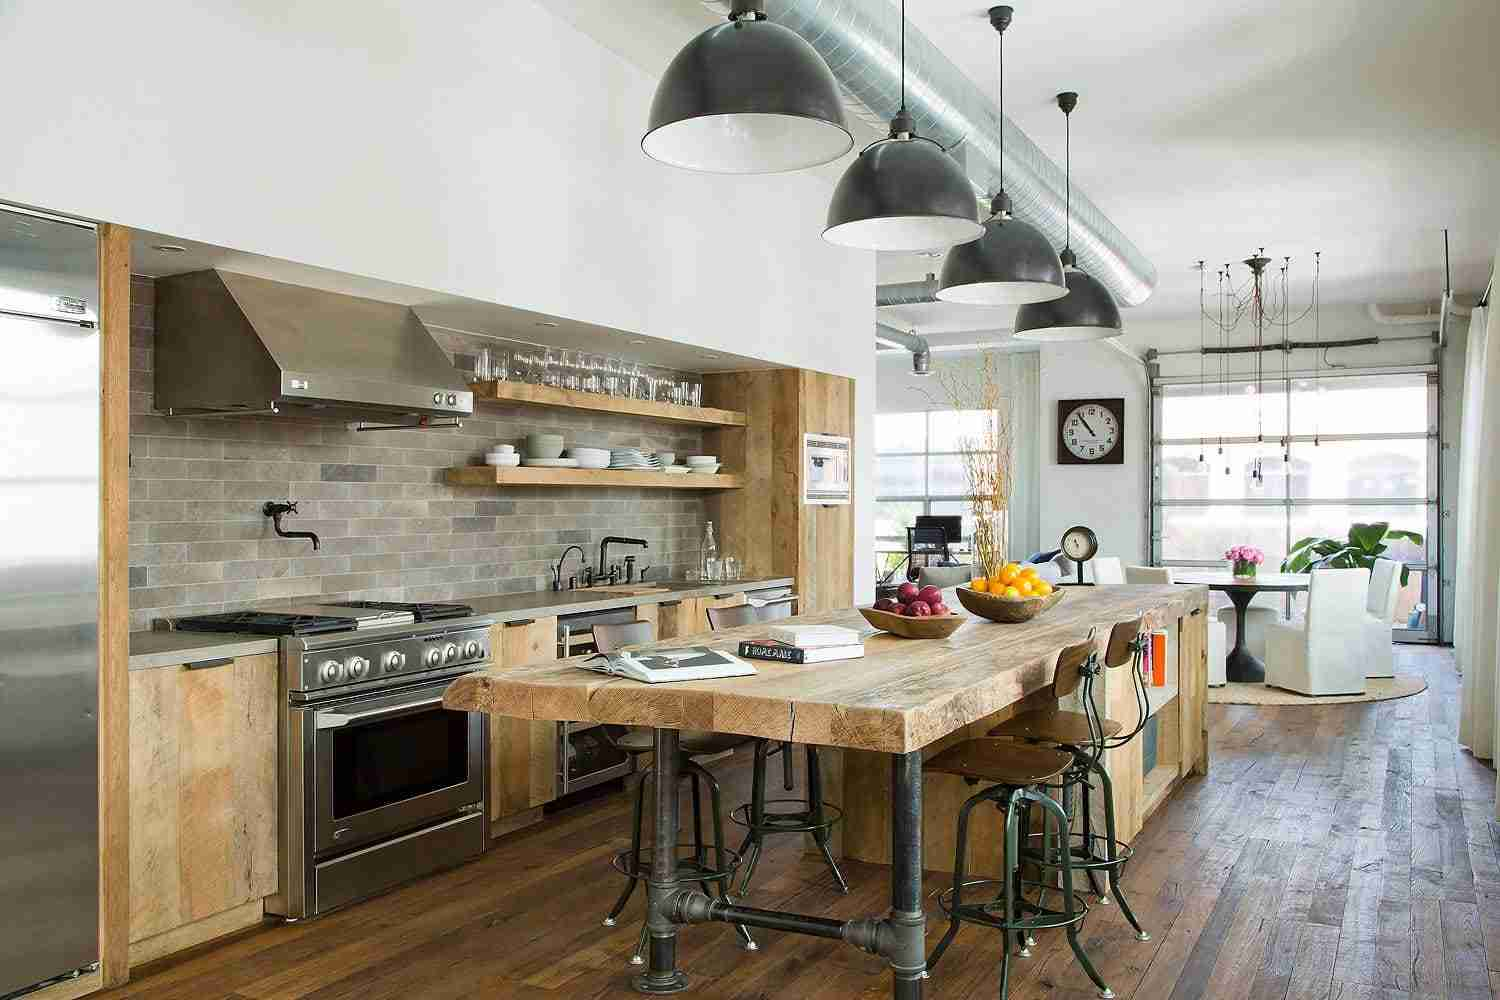 Solid Wood Kitchen Stylish Ideas for Modern Interiors. Rustic design with stone wall